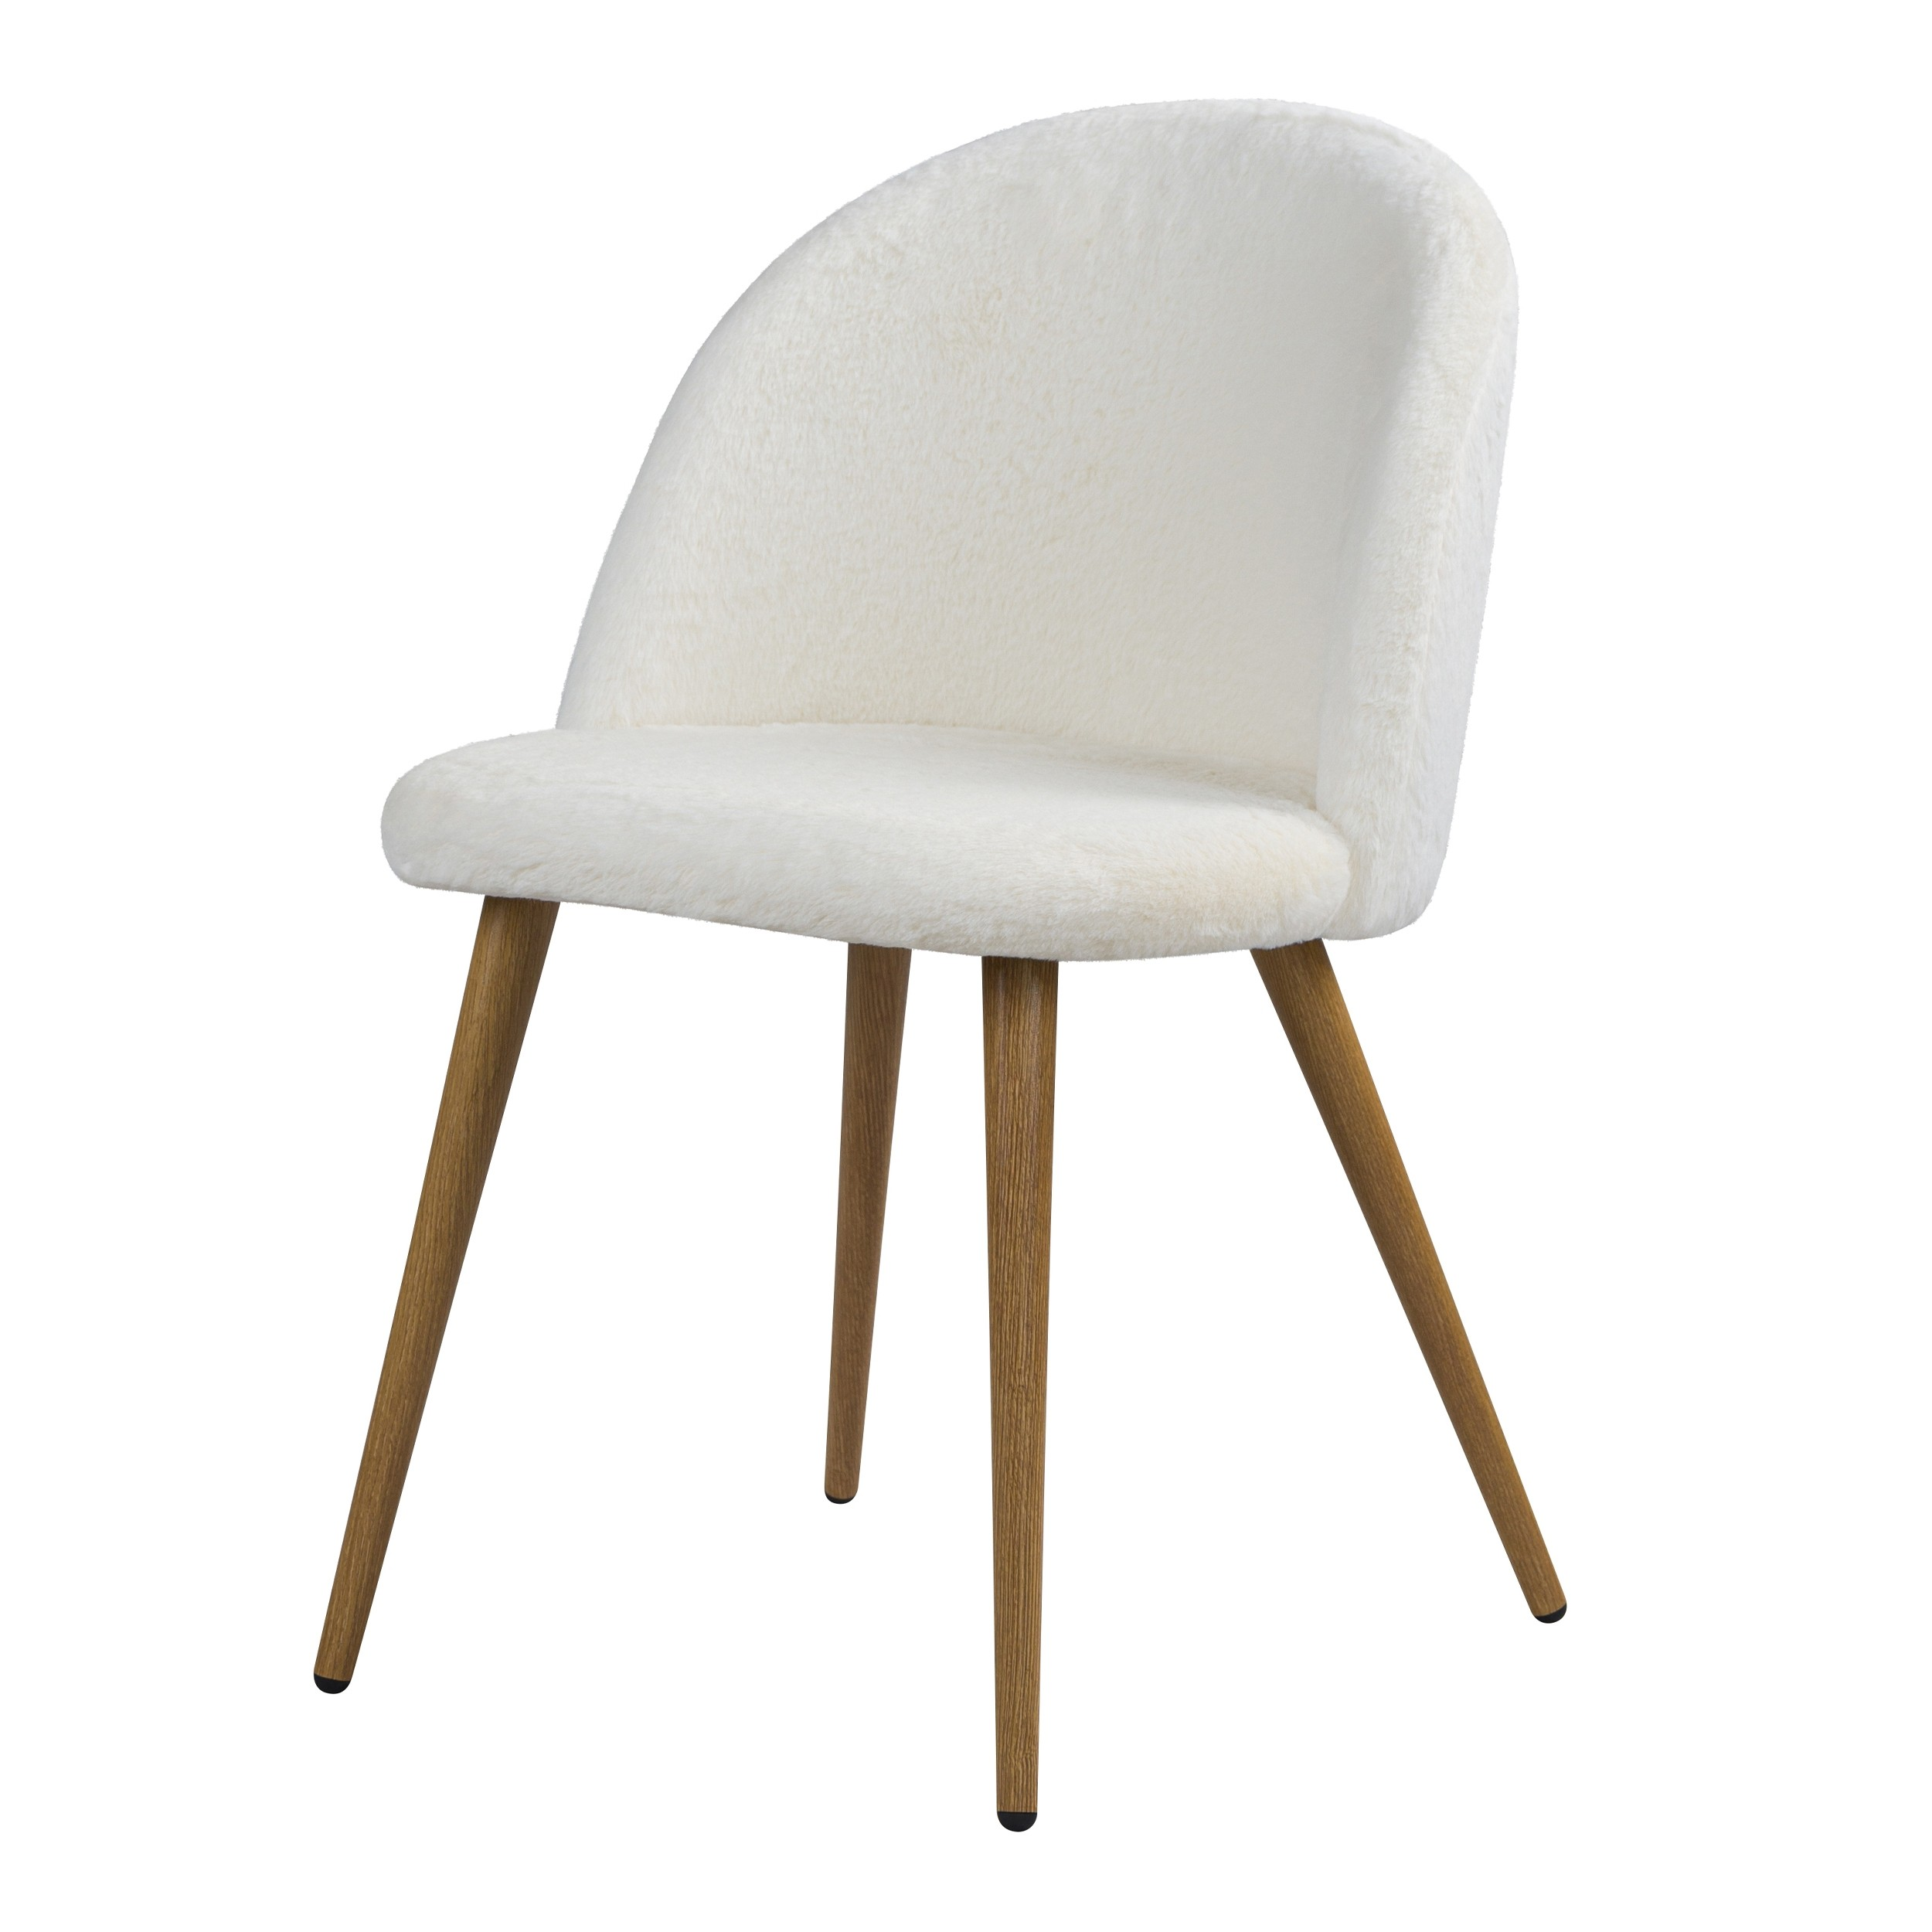 acheter chaise assise blanche confortable